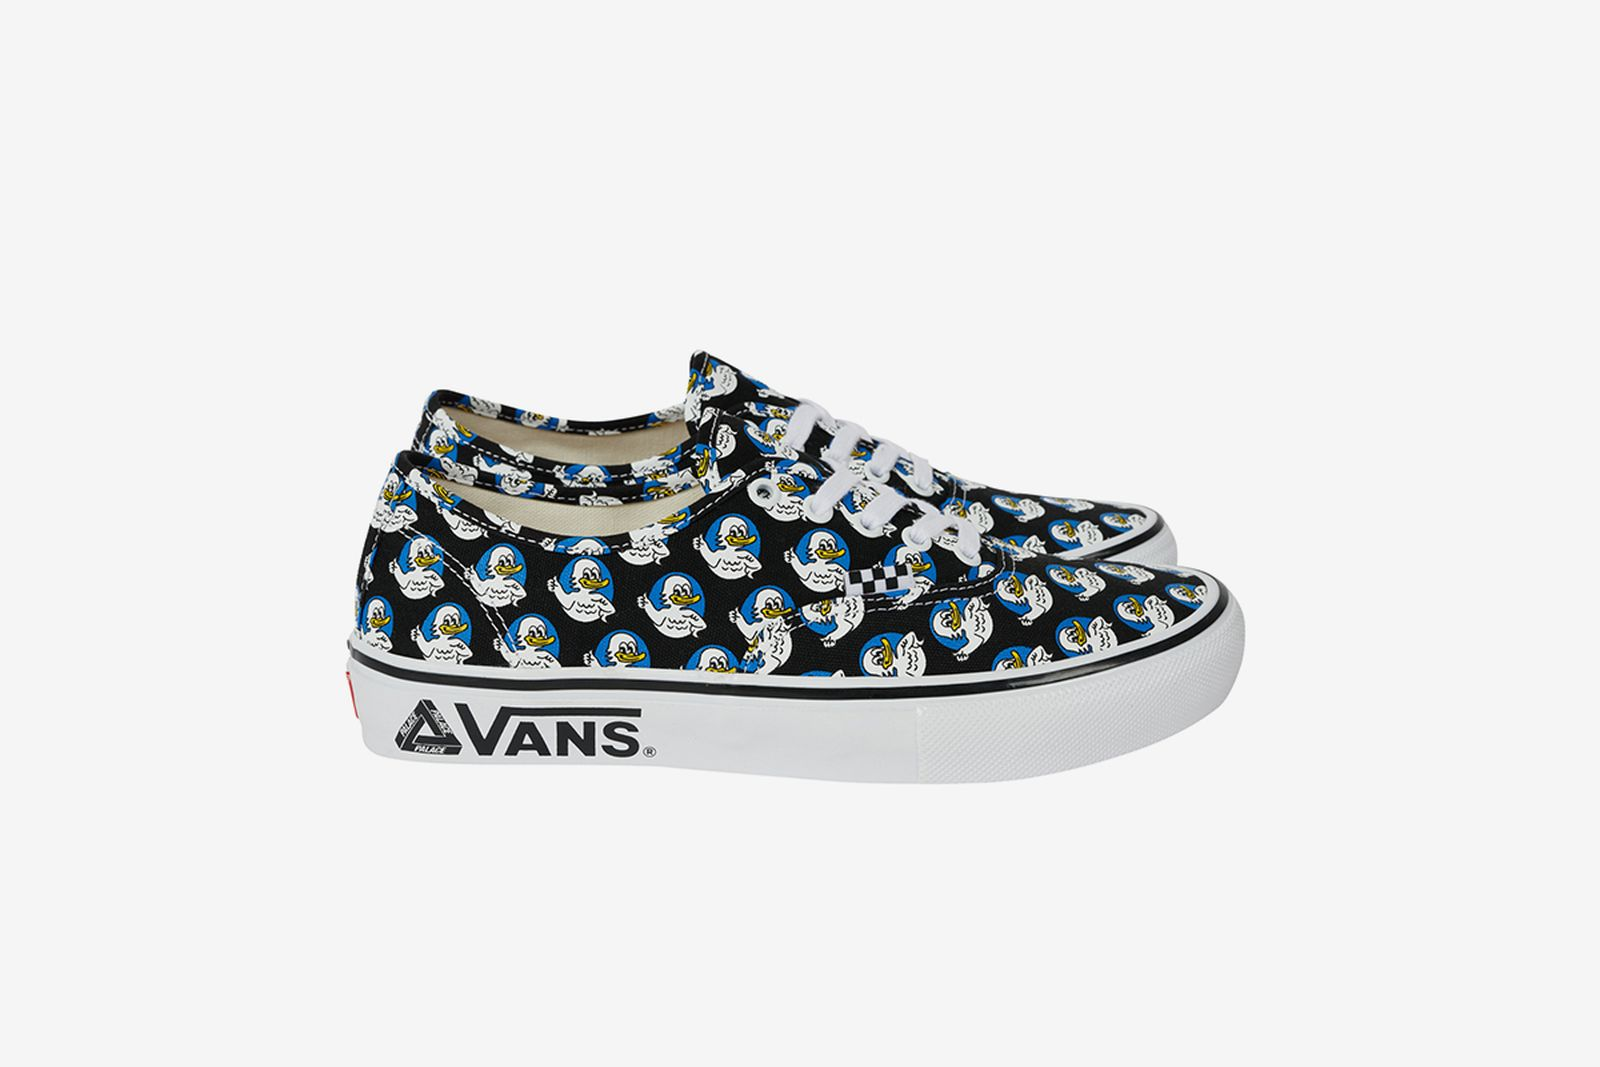 palace-vans-skate-authentic-release-date-price-1-01